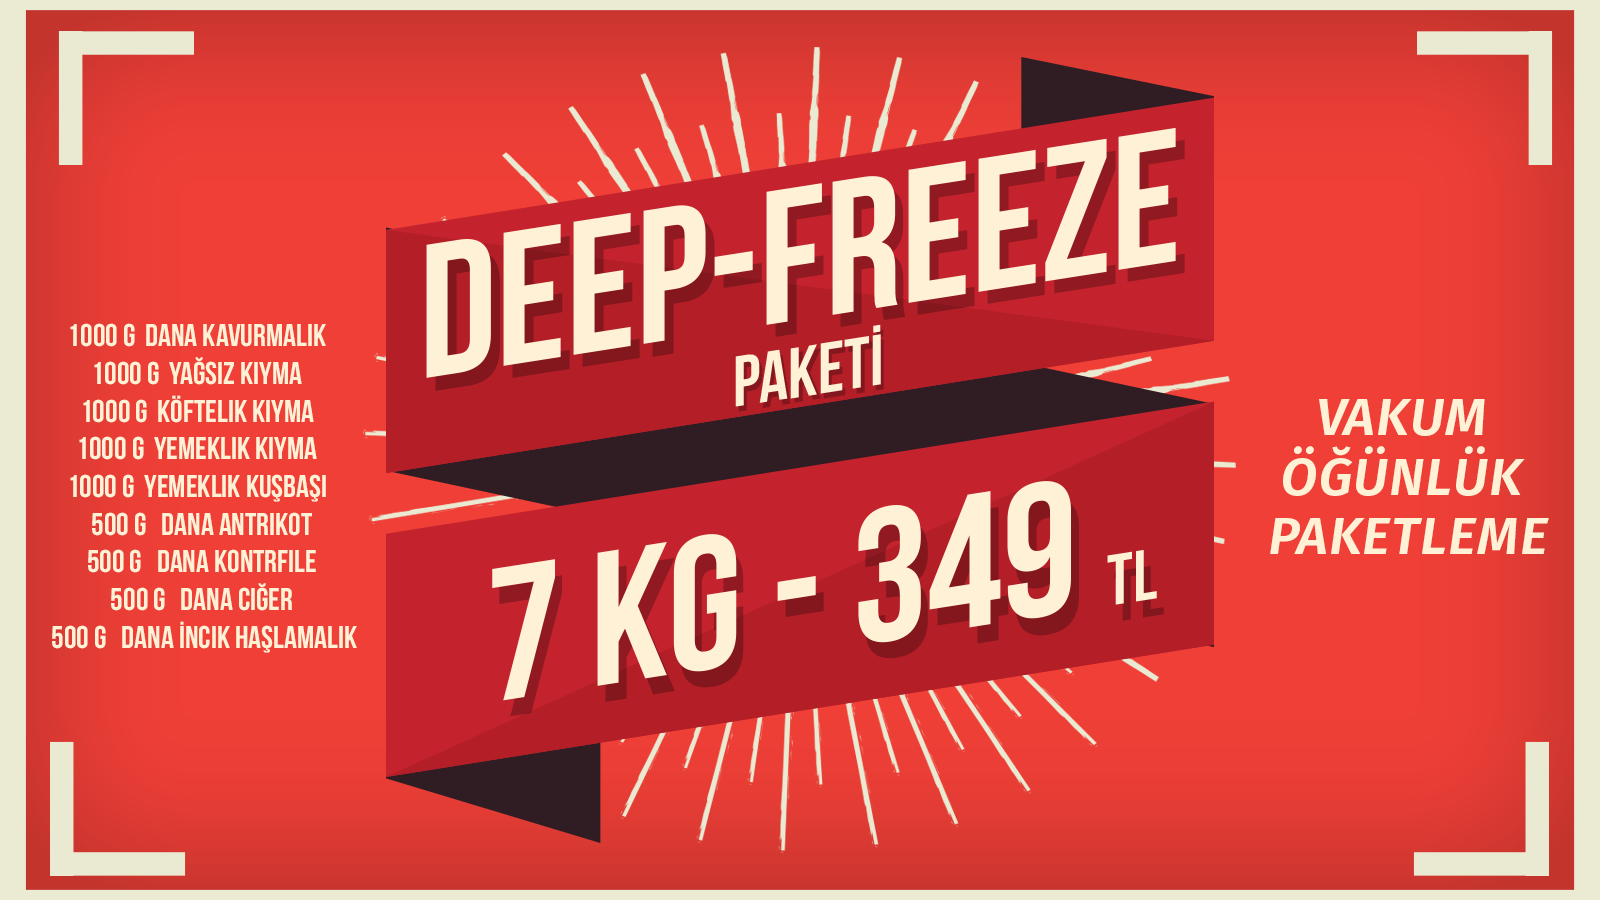 DEEP-FREEZE PAKETİ